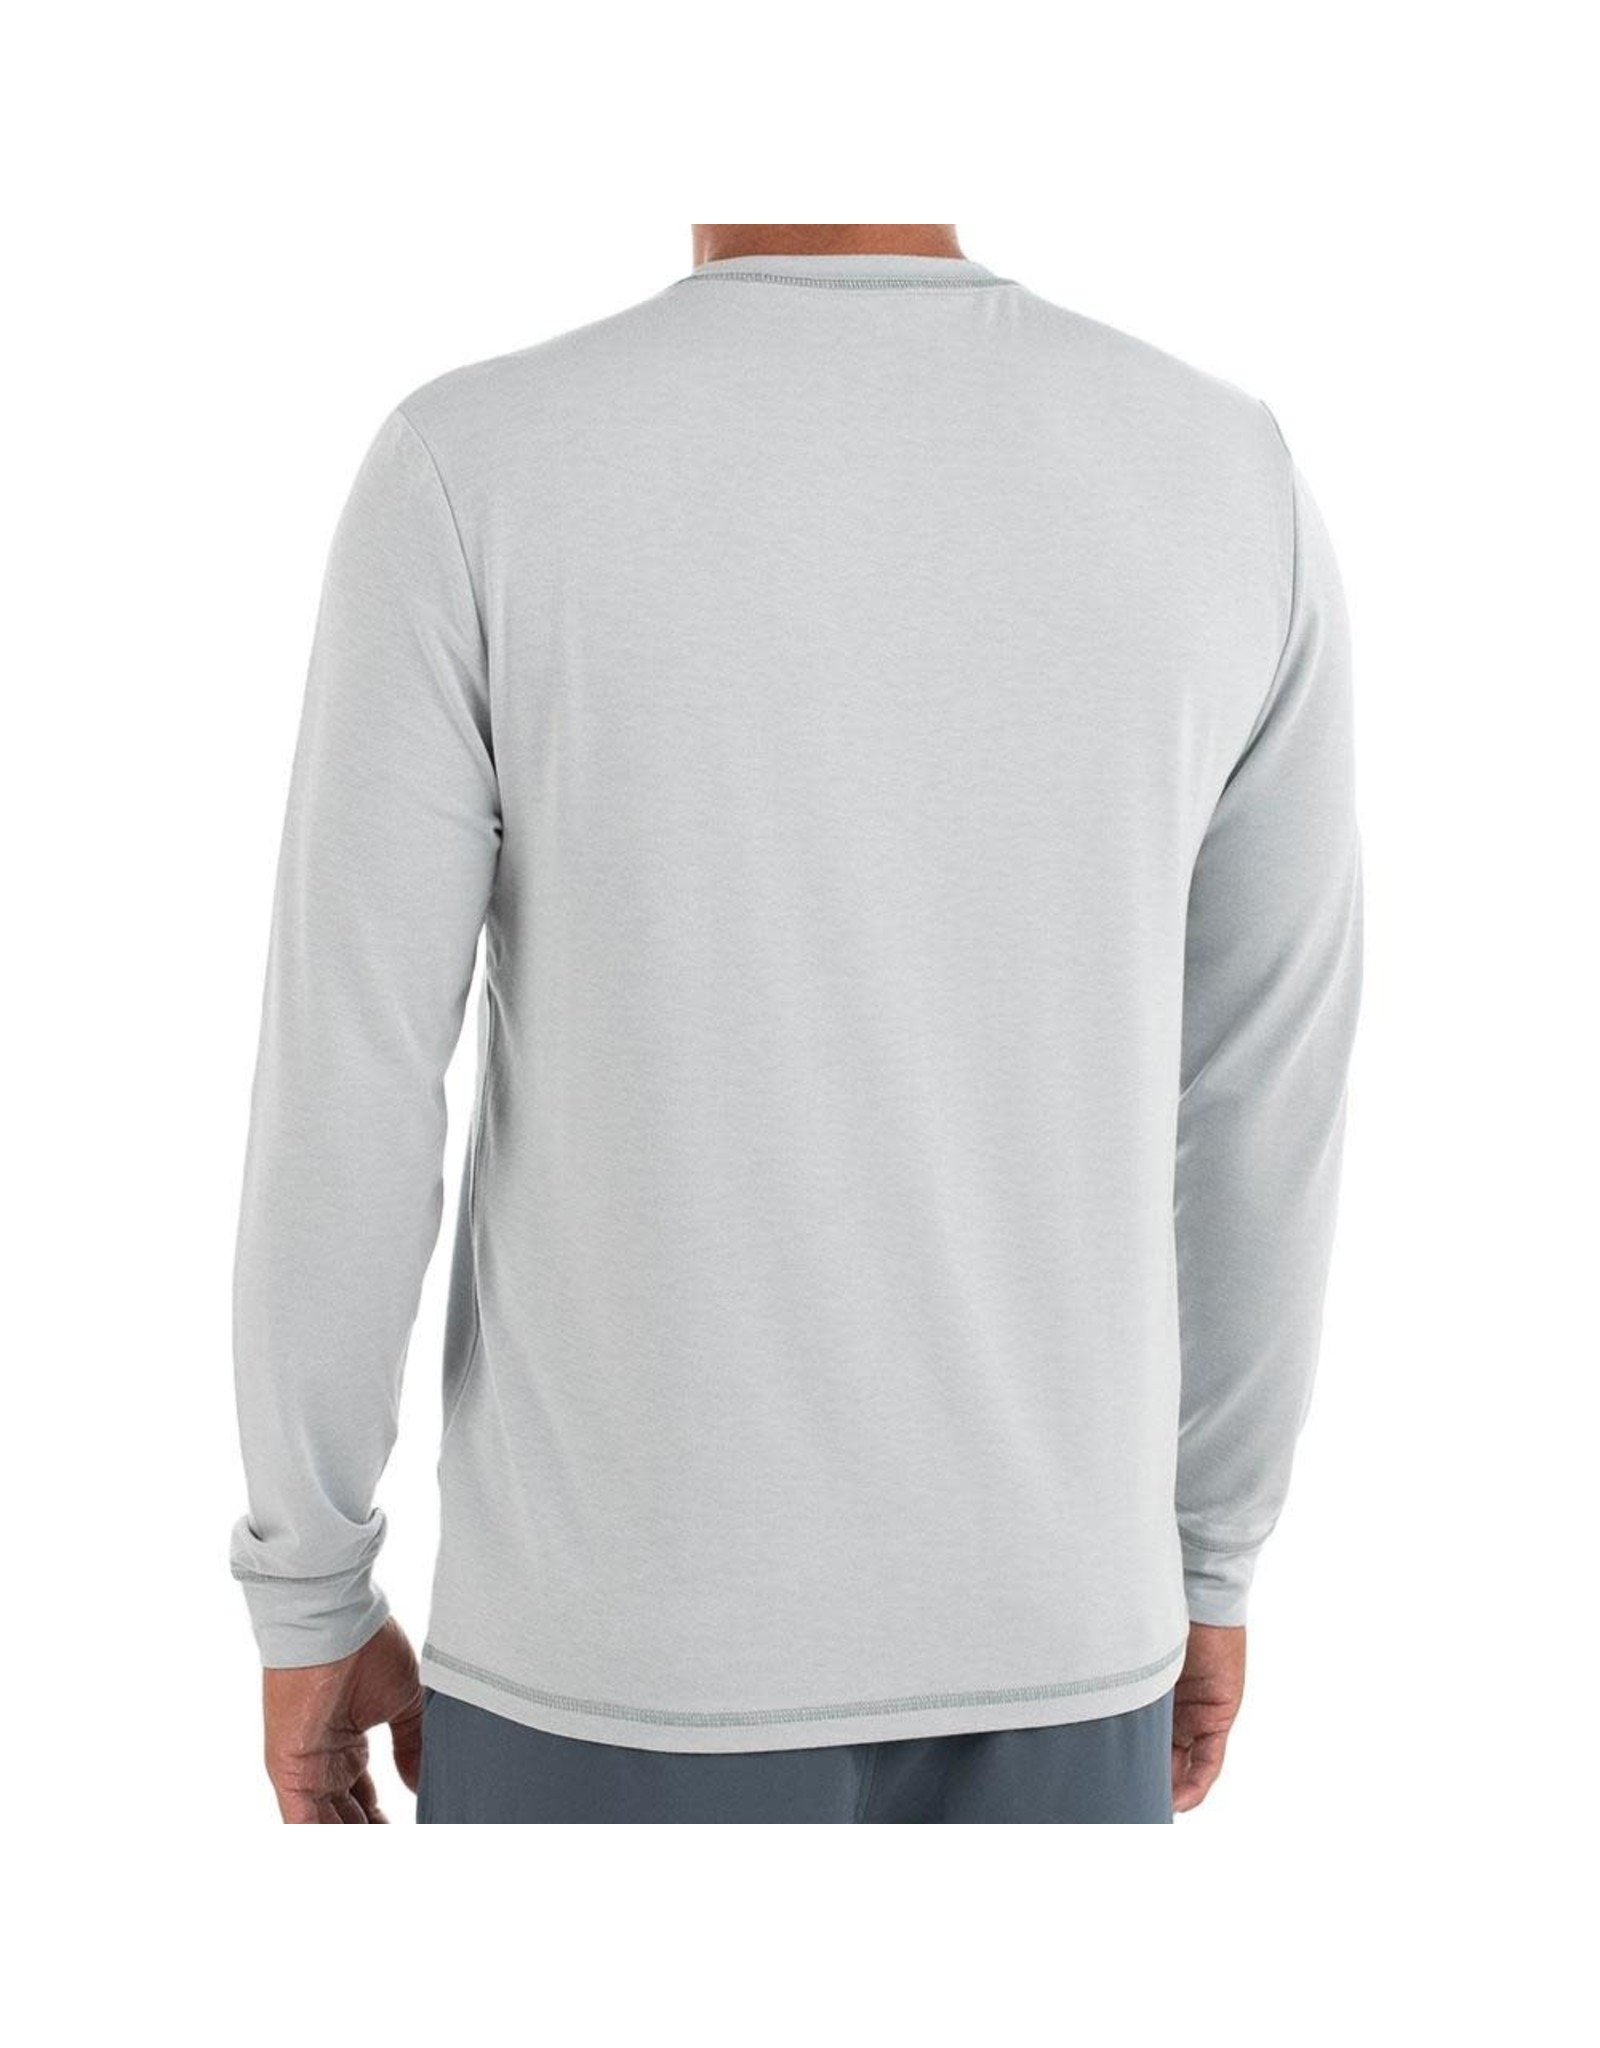 Free Fly Apparel Free Fly M's Bamboo Flex Long Sleeve